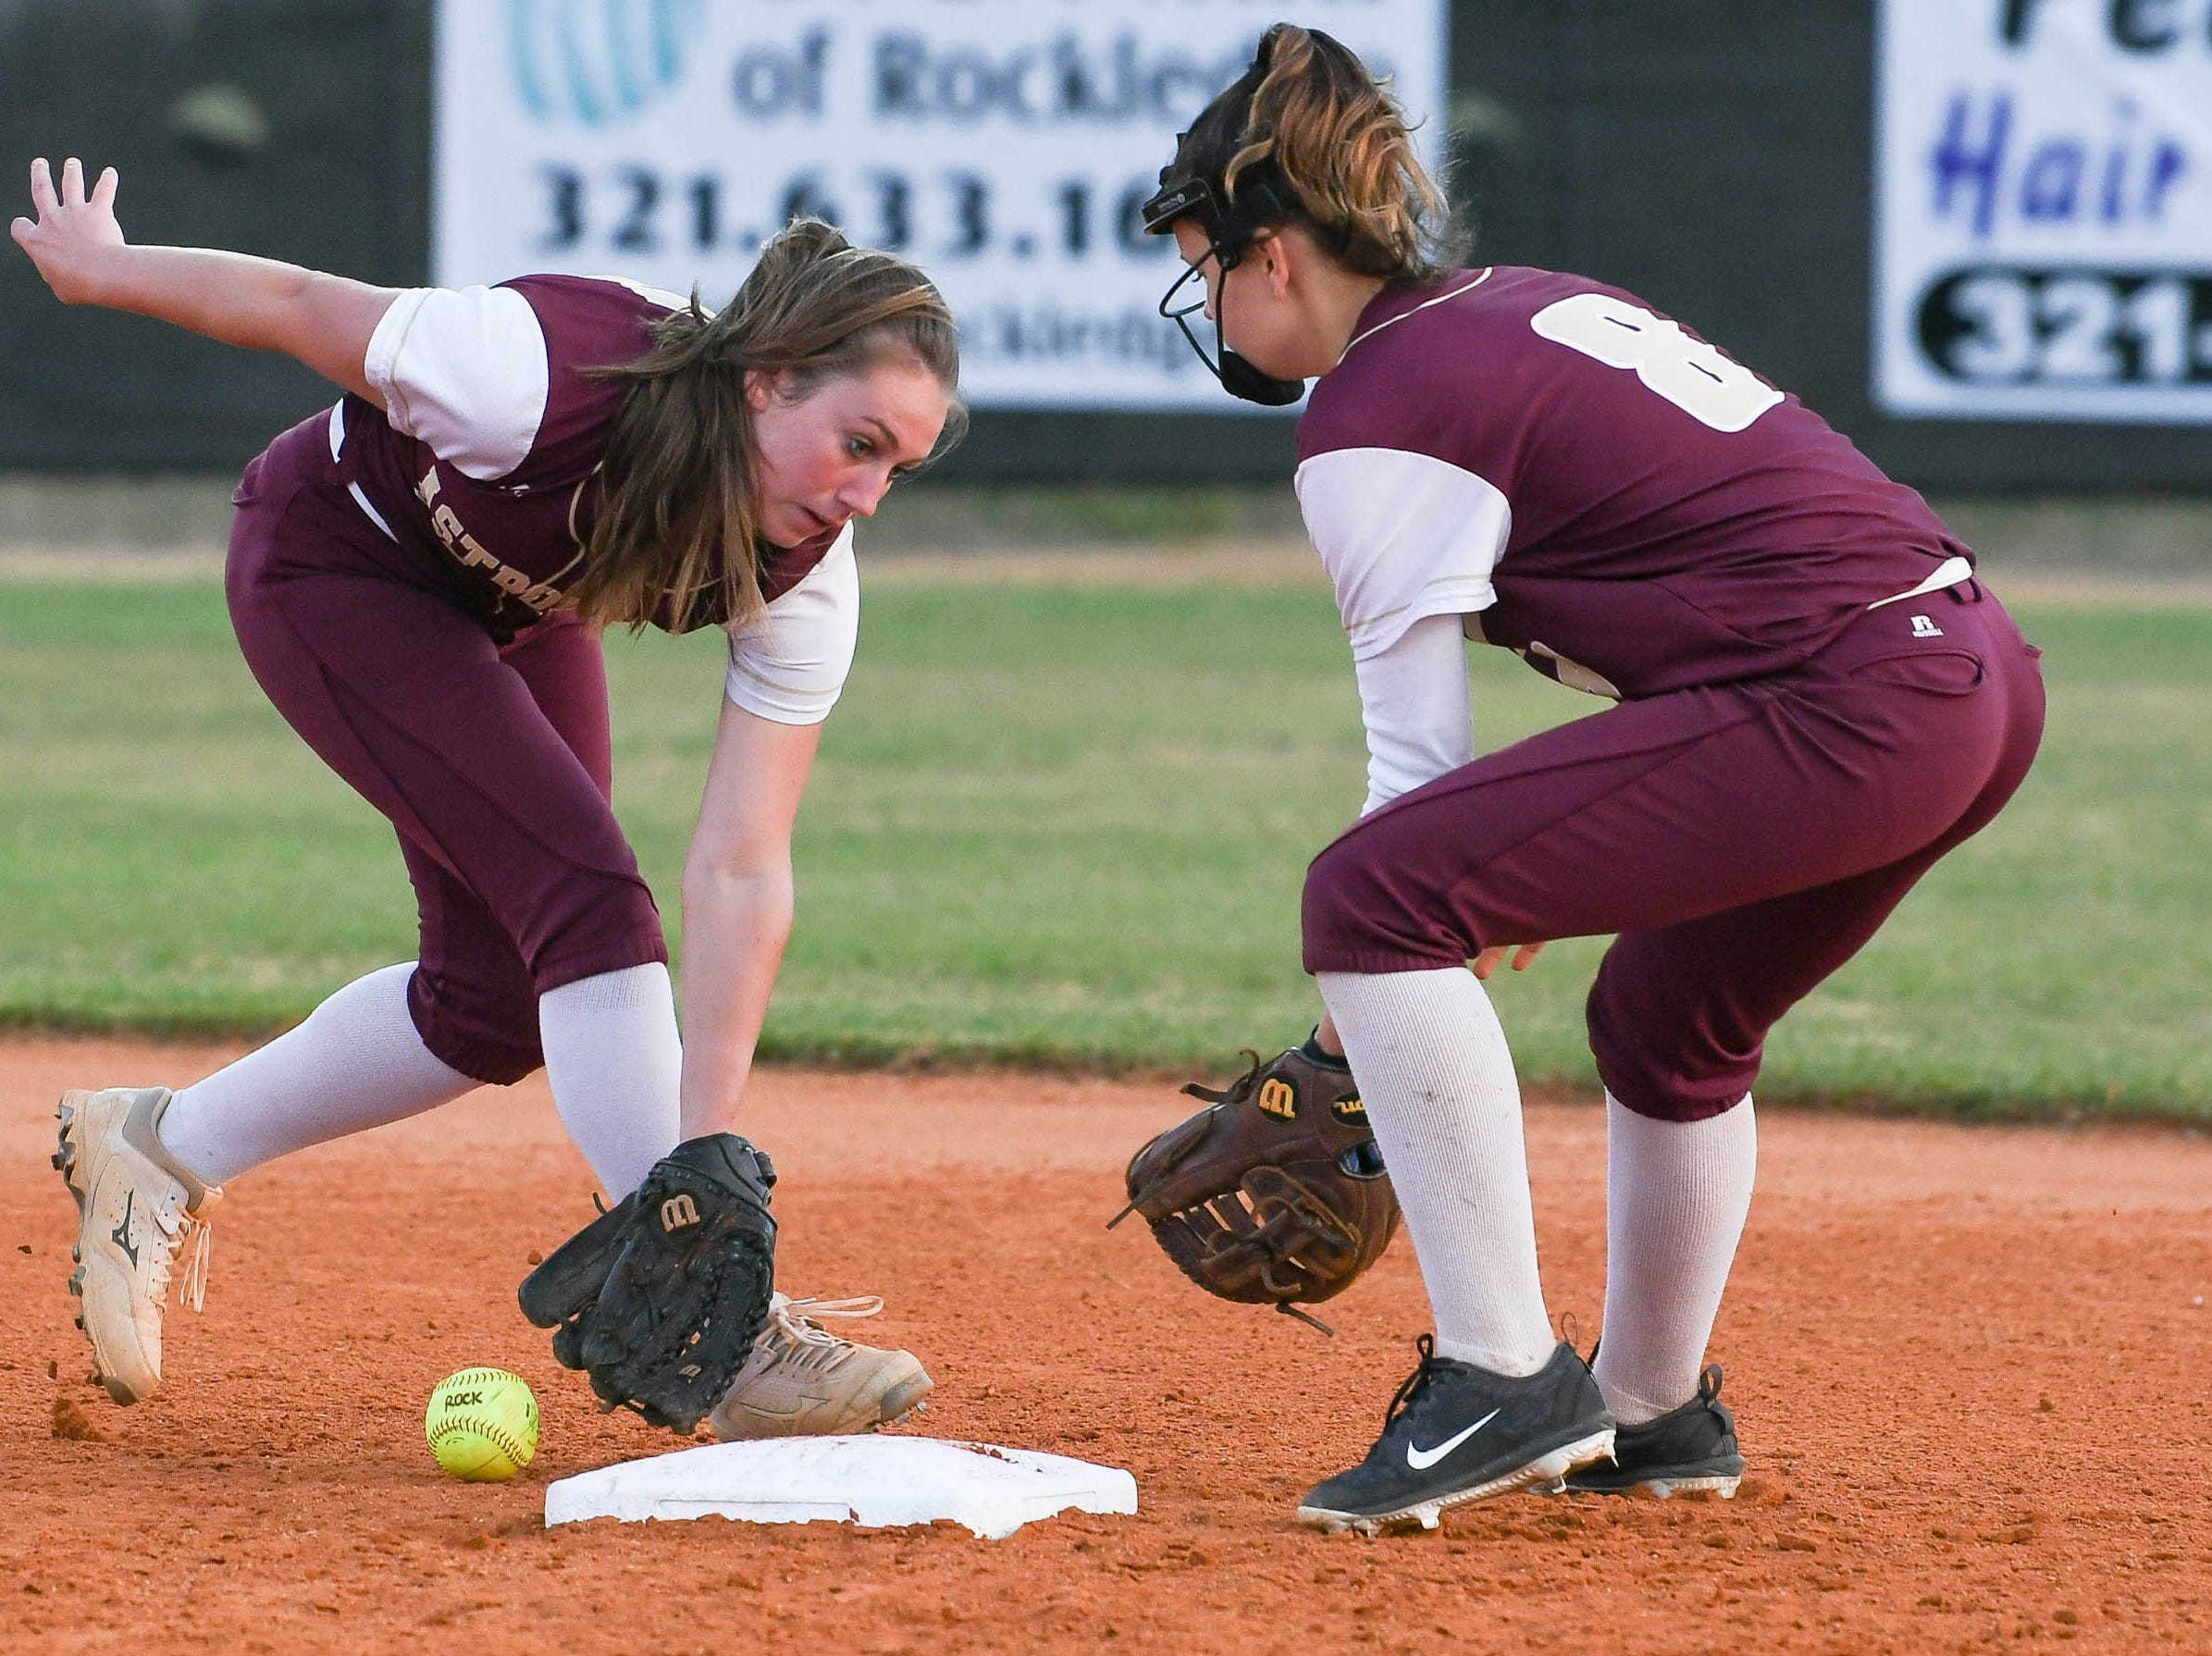 R. Rhodes and J. Lenders of Astronaut both try to retrieve a grounder during Wednesday's game against Rockledge.